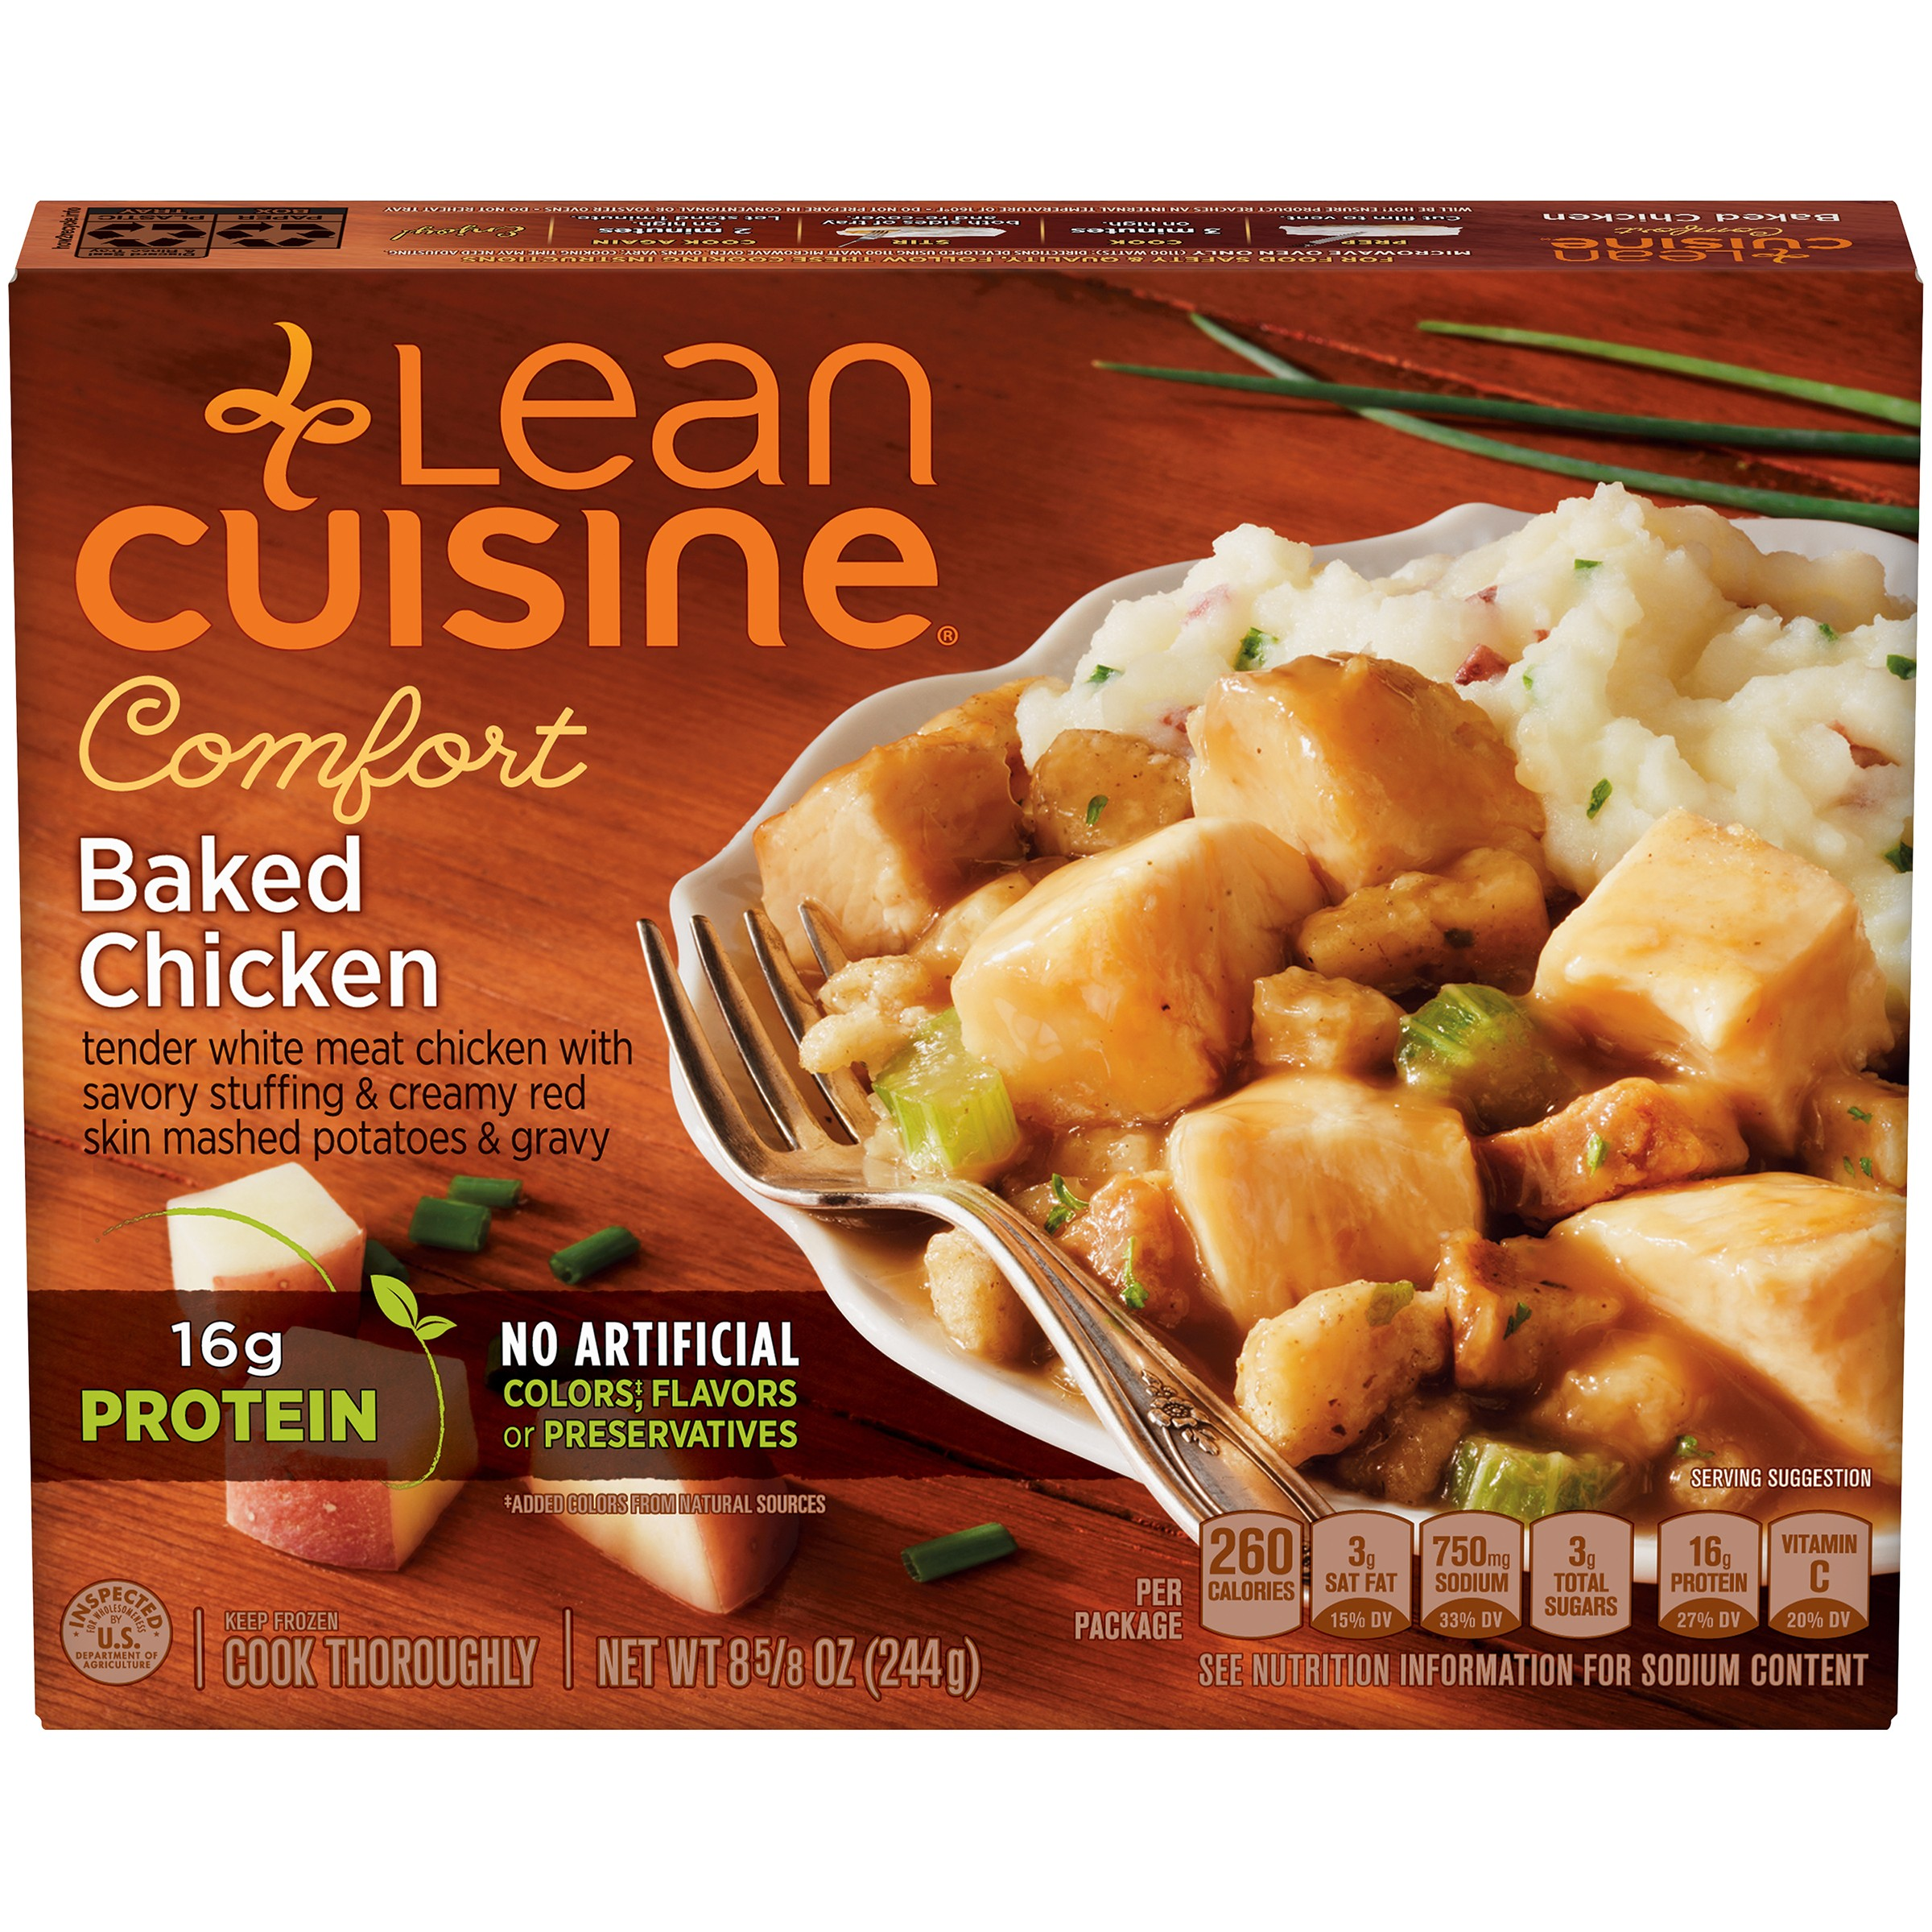 LEAN CUISINE COMFORT Baked Chicken 8.625 oz. Box